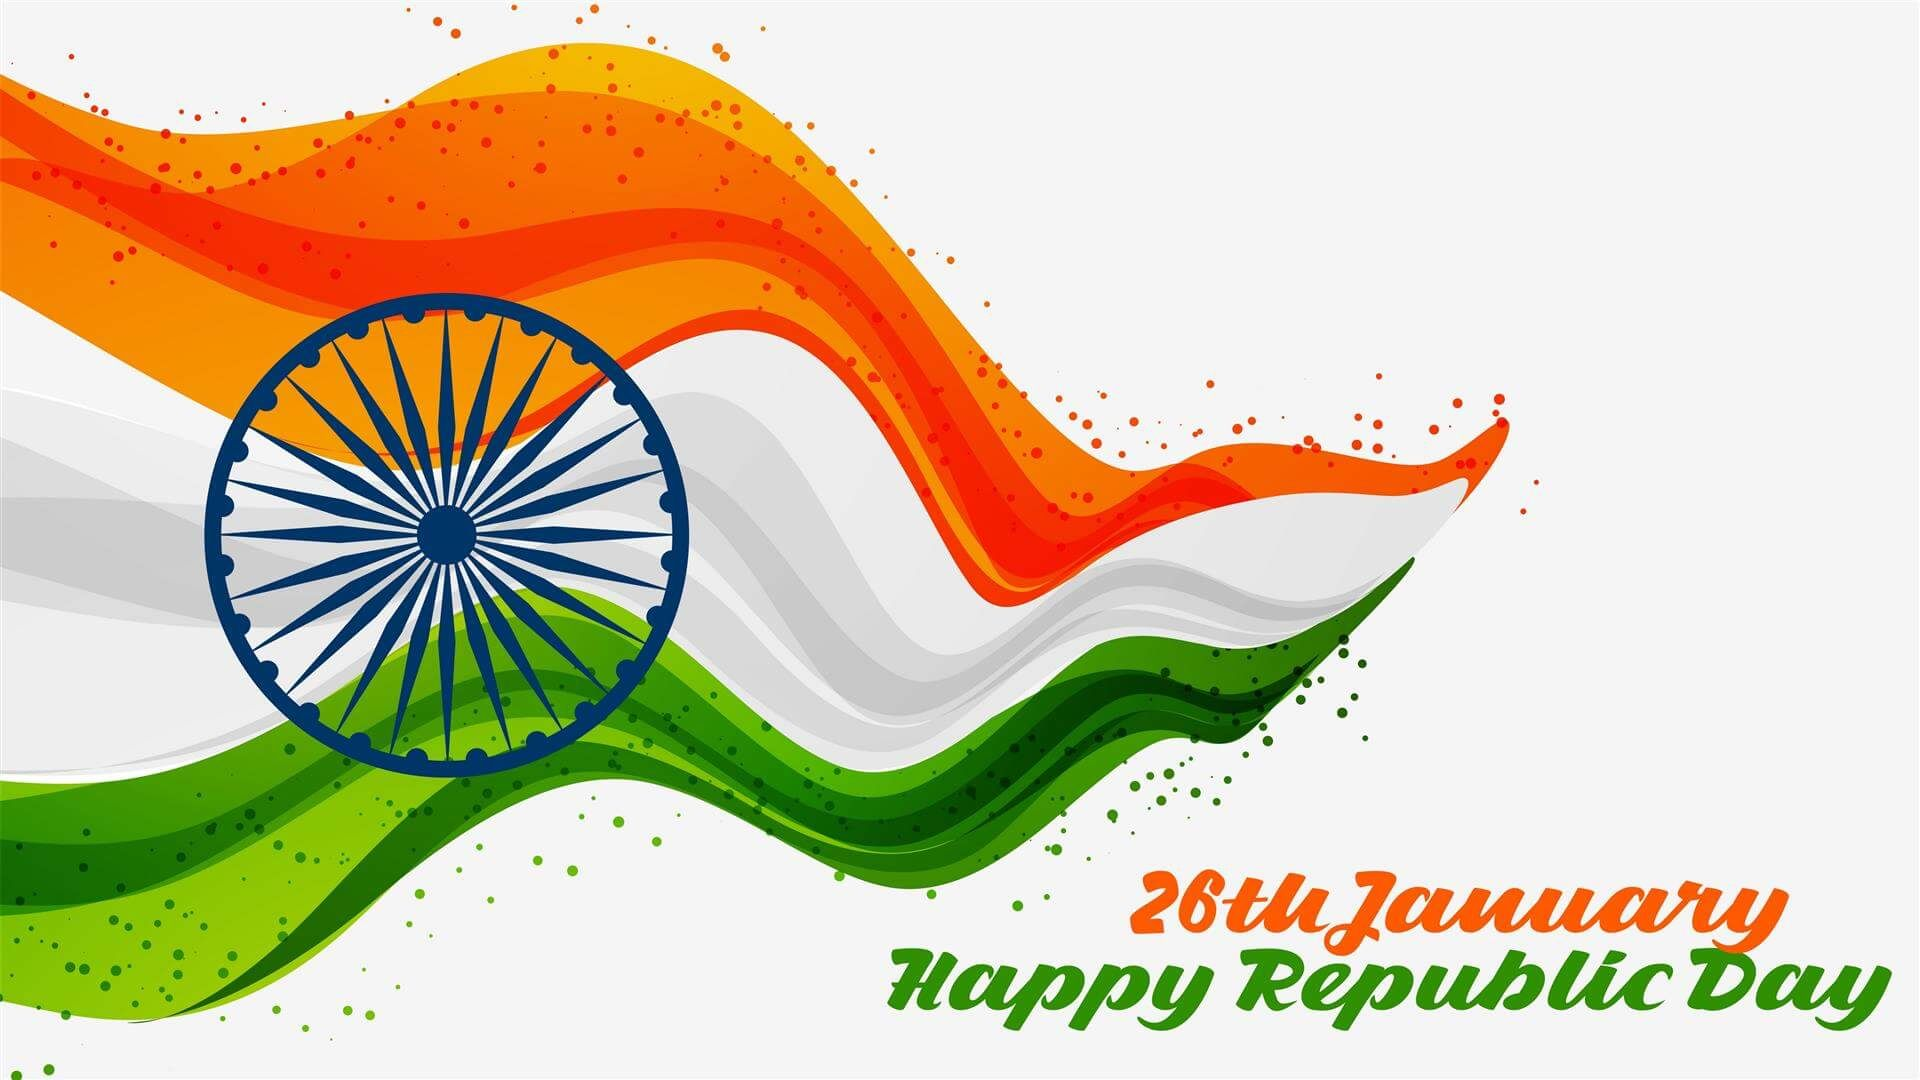 50 Happy Republic Day Images And Photo Collection 2020 List Bark Republic Day Photos Republic Day Republic Day India Happy republic day images hd 2021